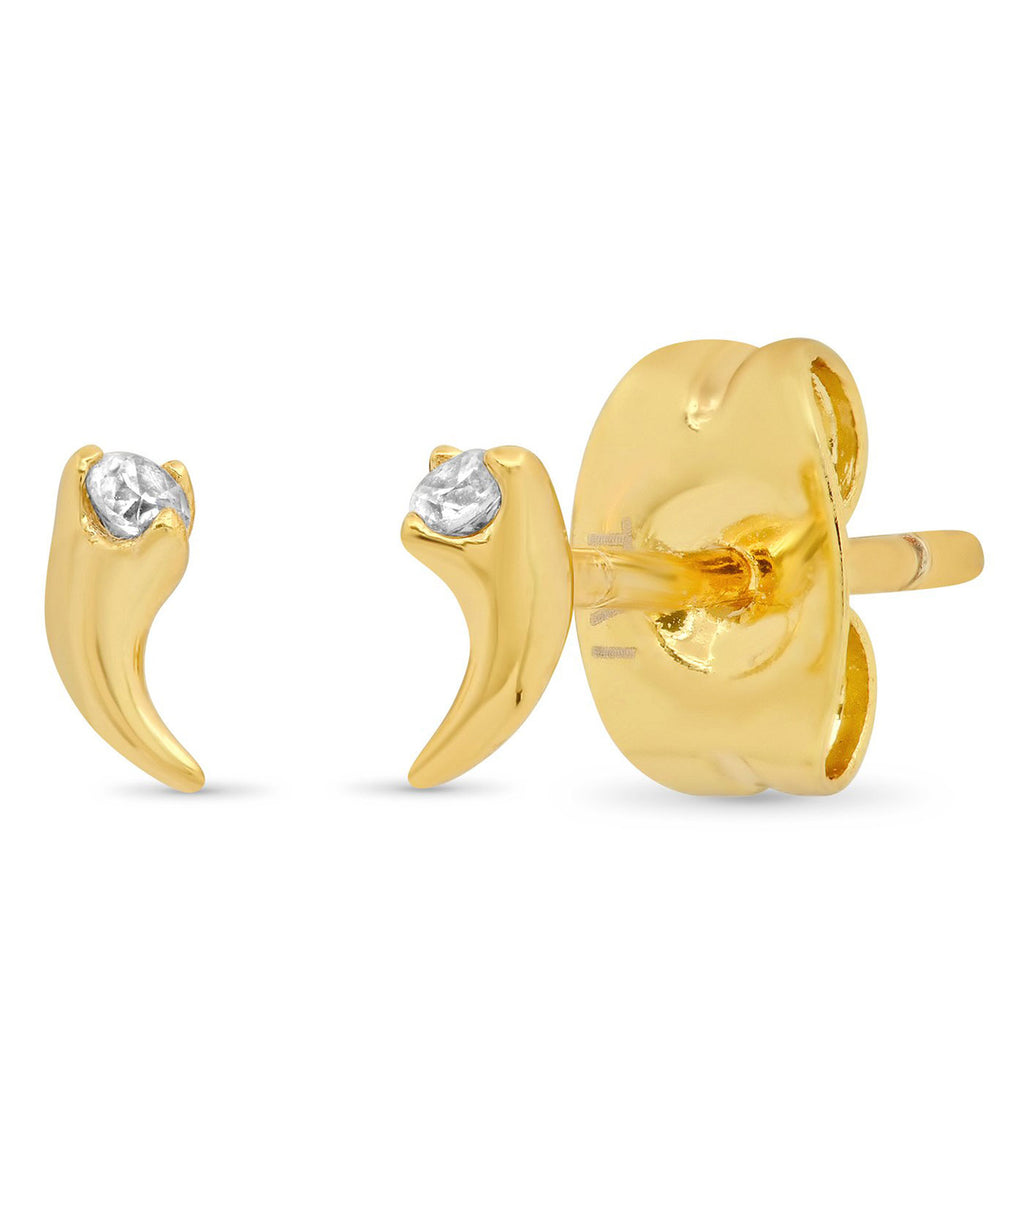 TAI Gold Mini Horn Earrings